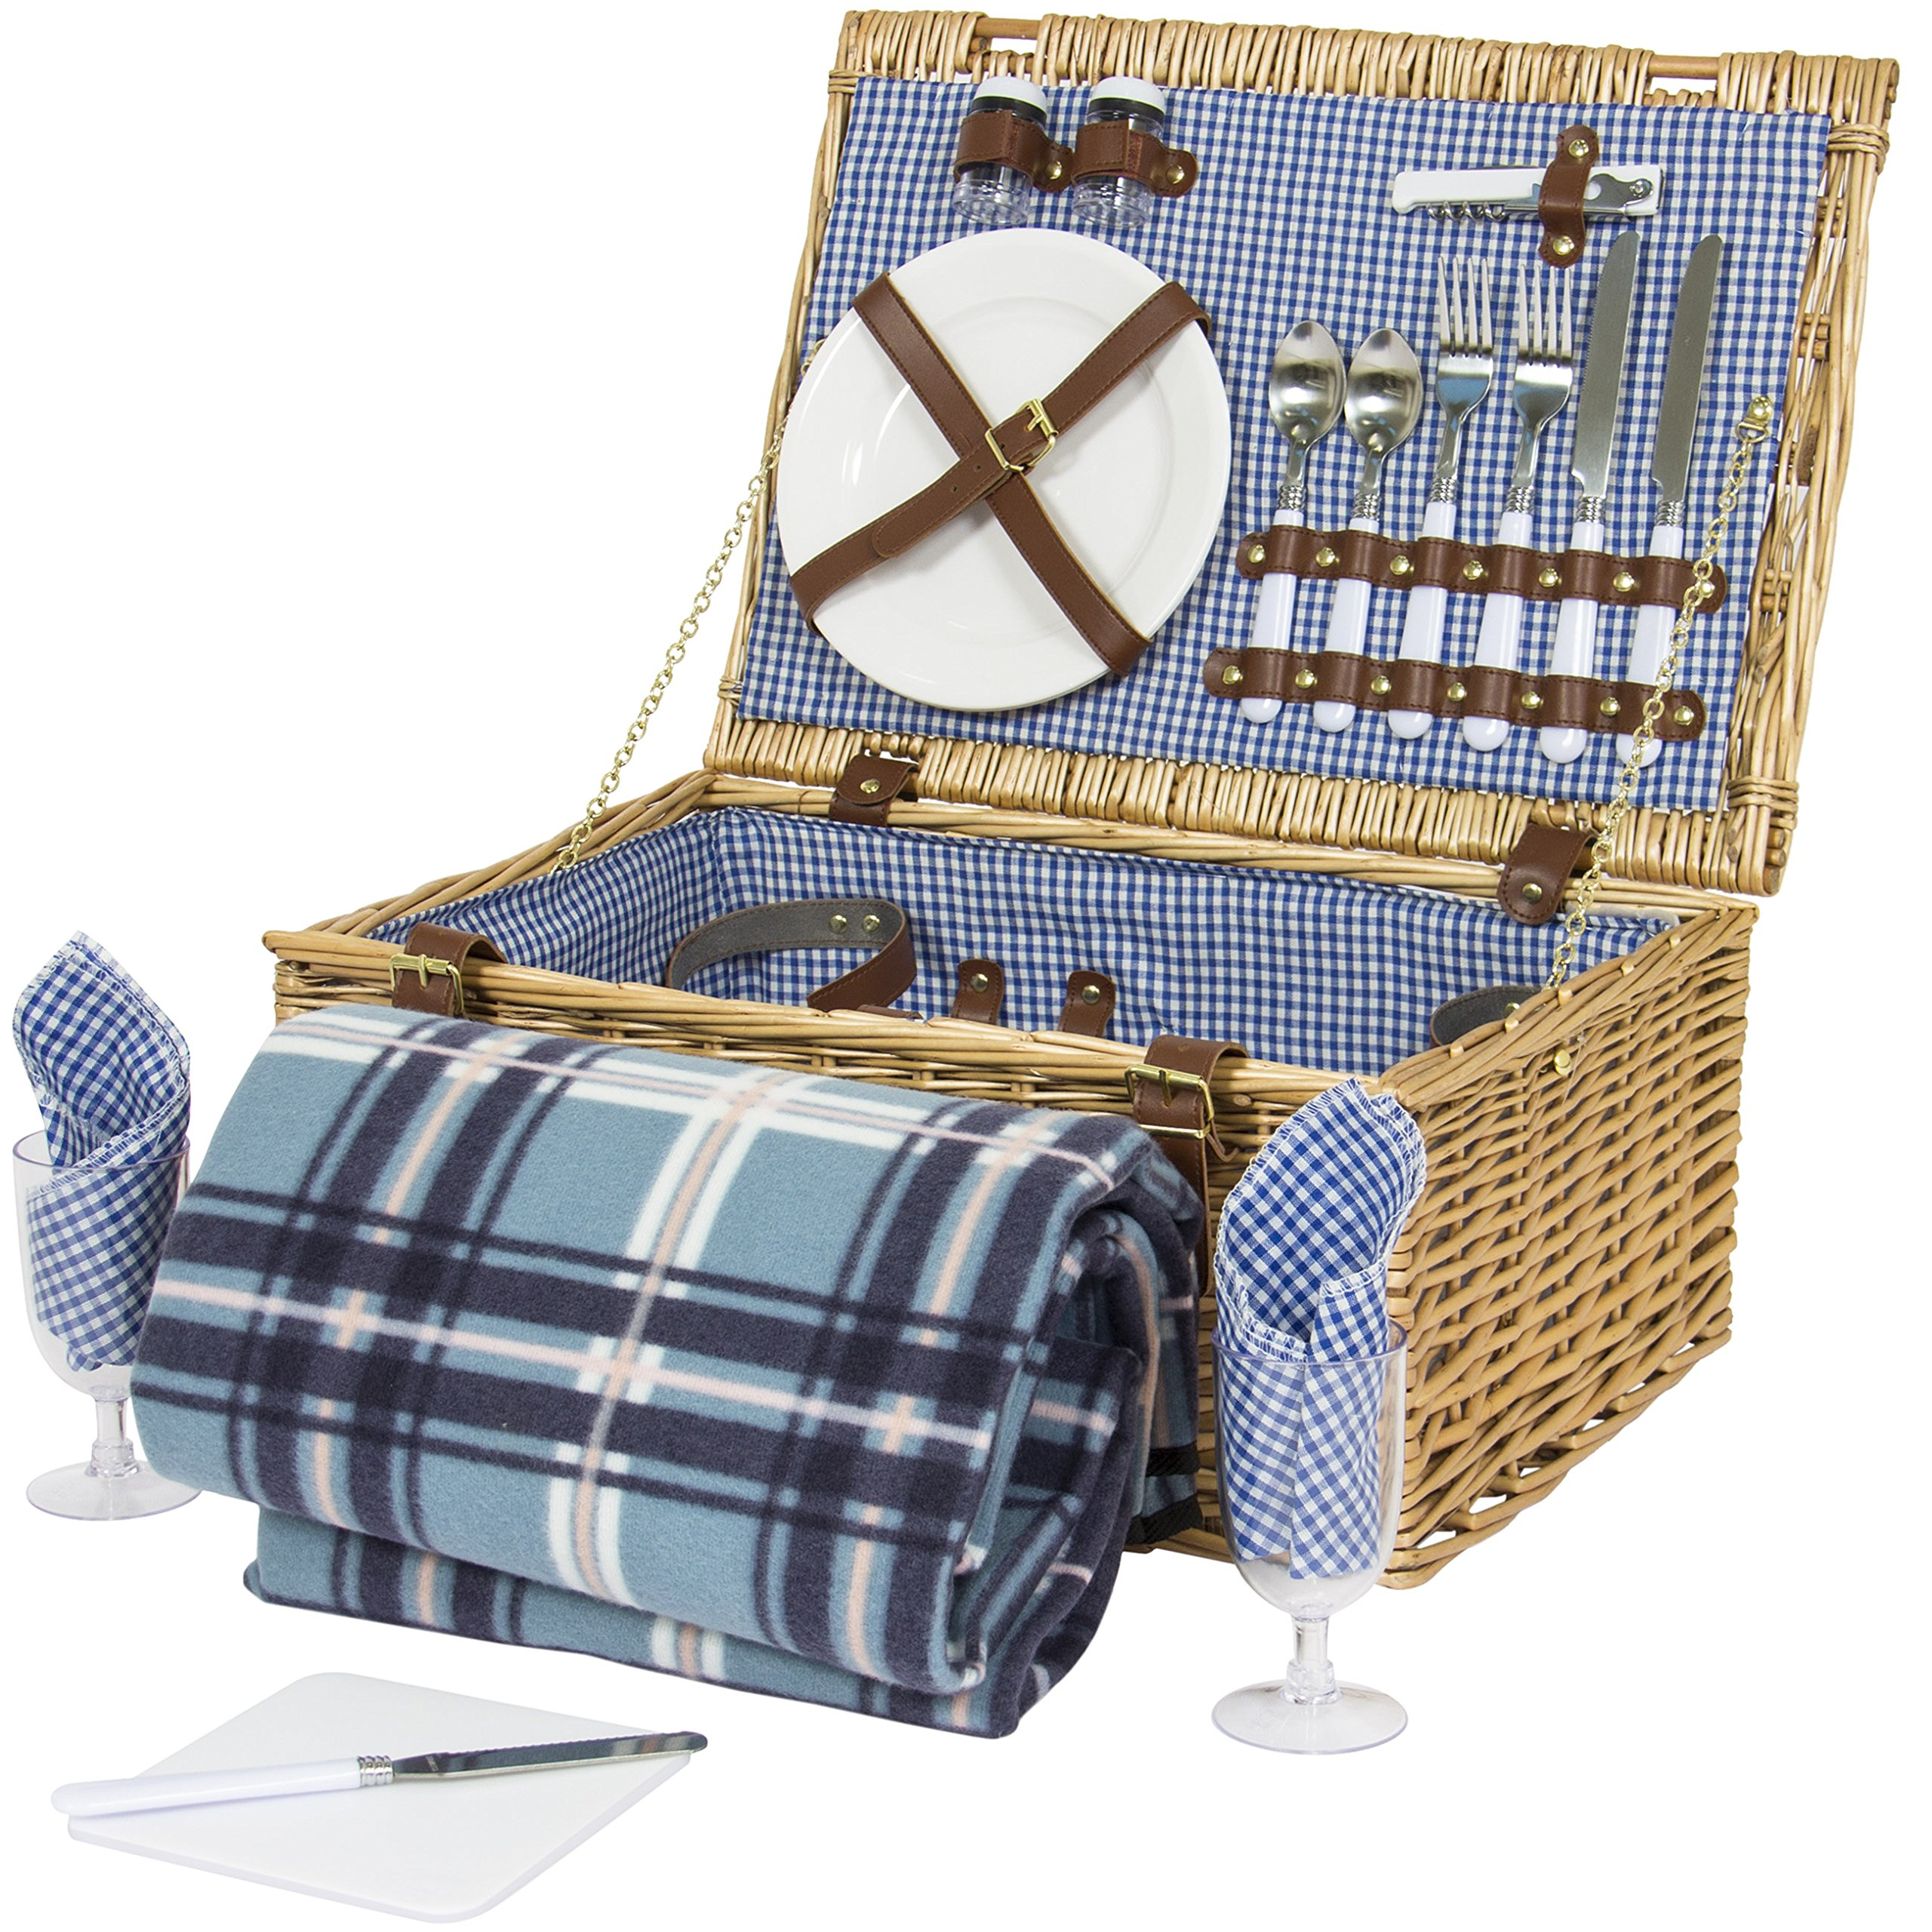 Best Choice Products 2 Person Wicker Picnic Basket w/Cutlery, Plates, 2 Wine Glasses, Tableware, Fleece Blanket - Brown by Best Choice Products (Image #1)